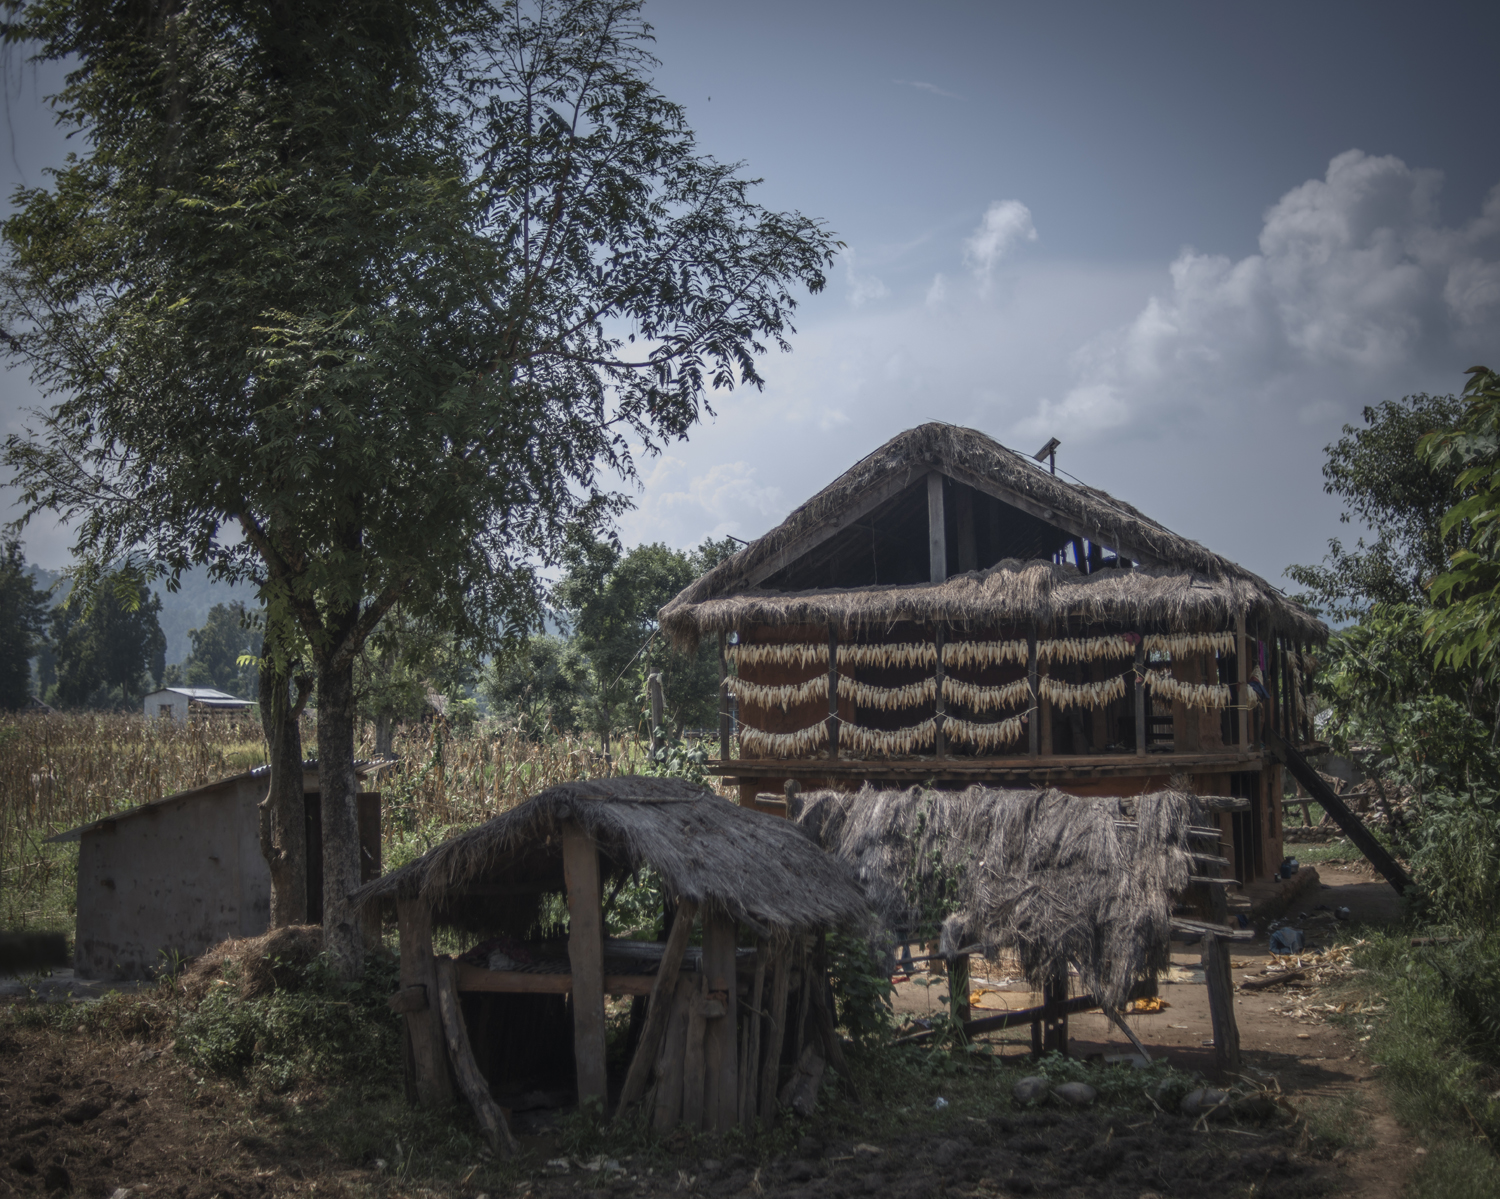 A shed in Narsi village.